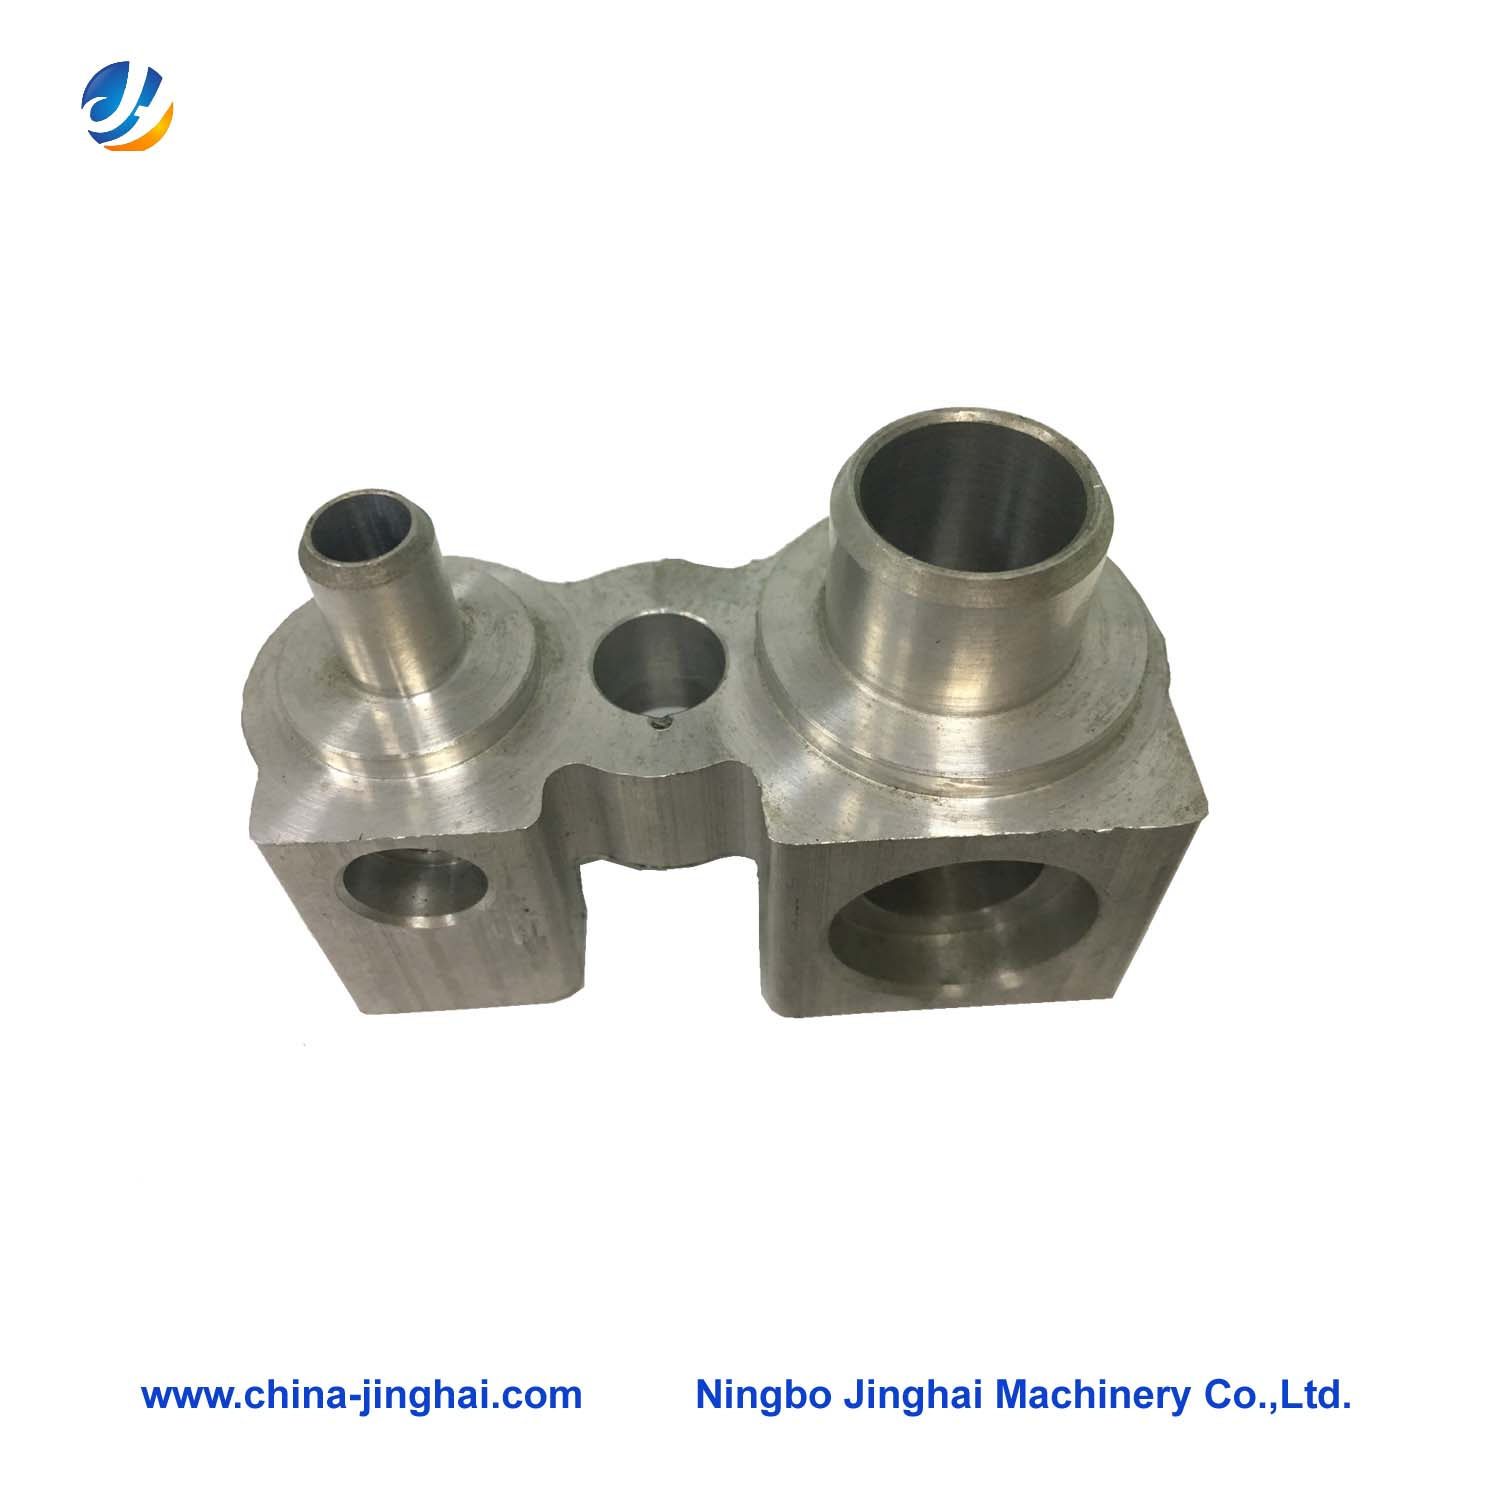 Milling aluminum parts Featured Image